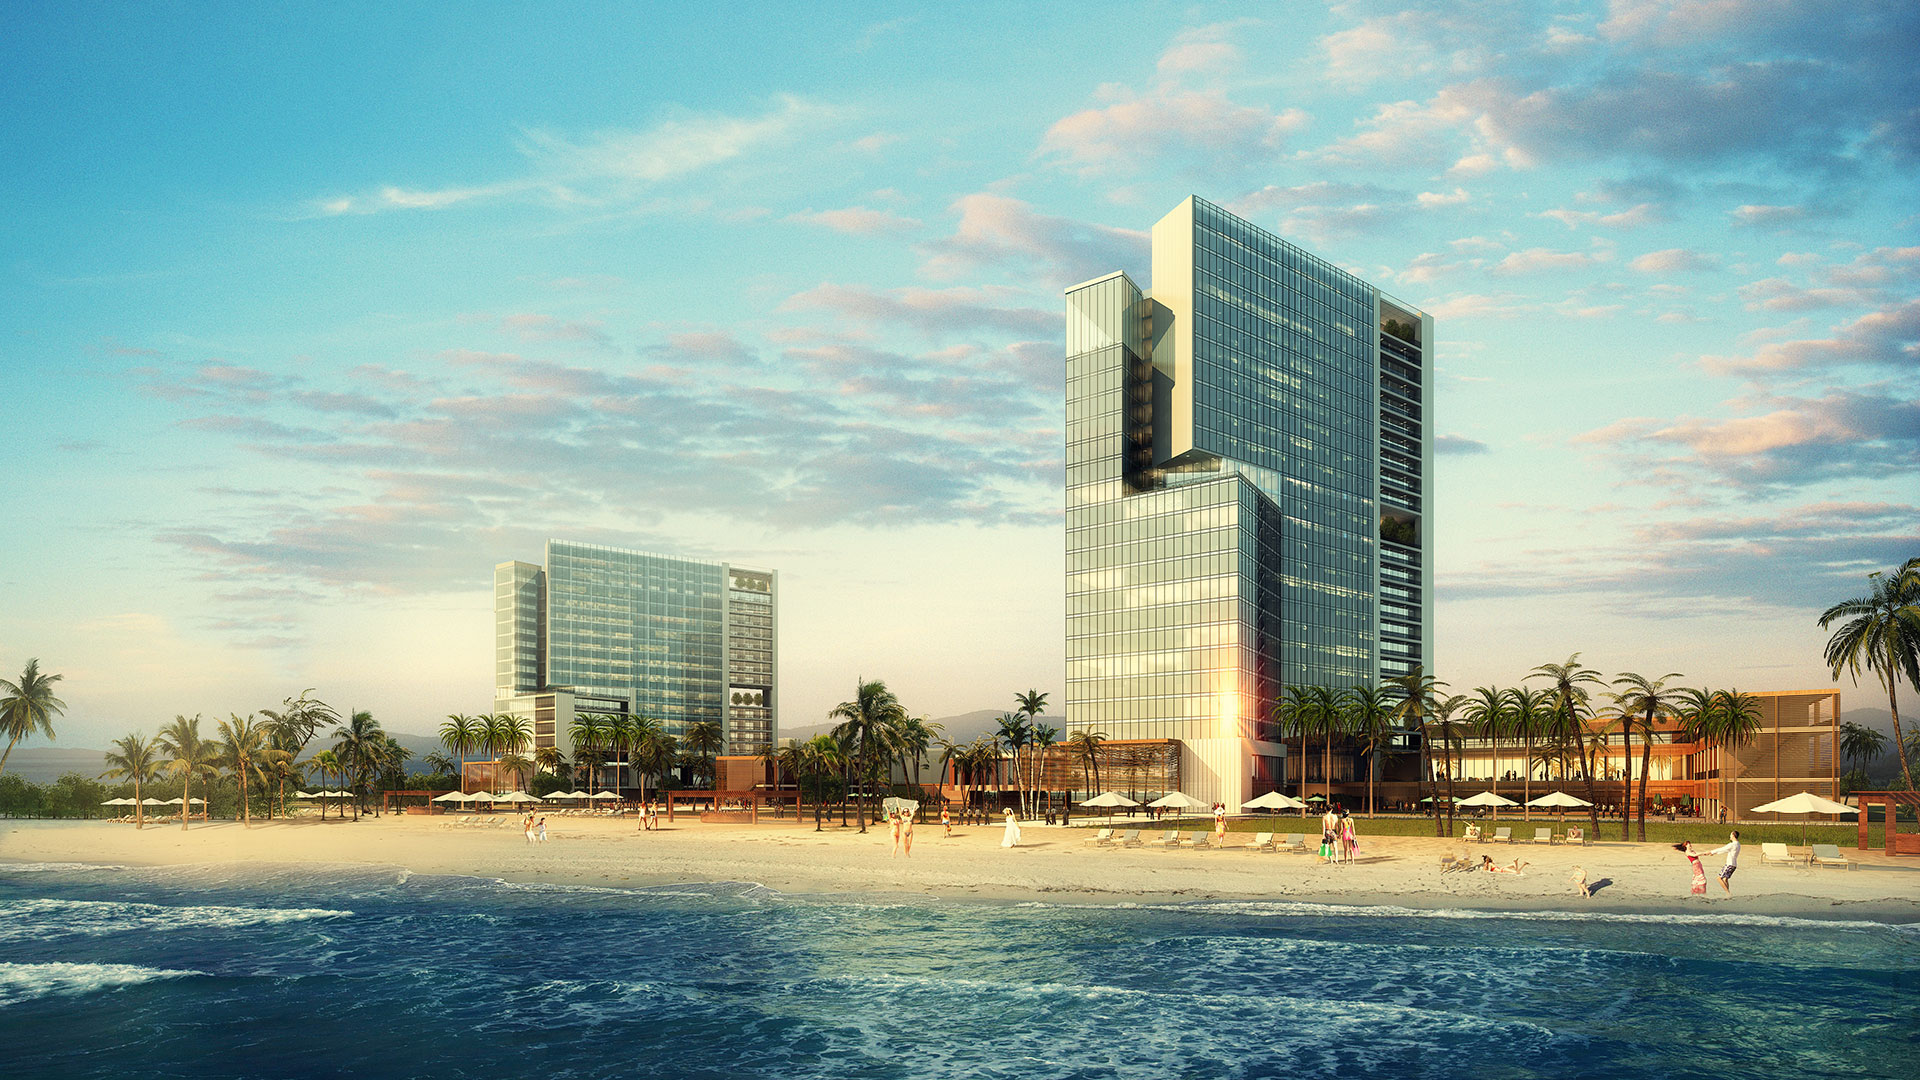 Marriot Hotel Hainan Island-China SOGDesign